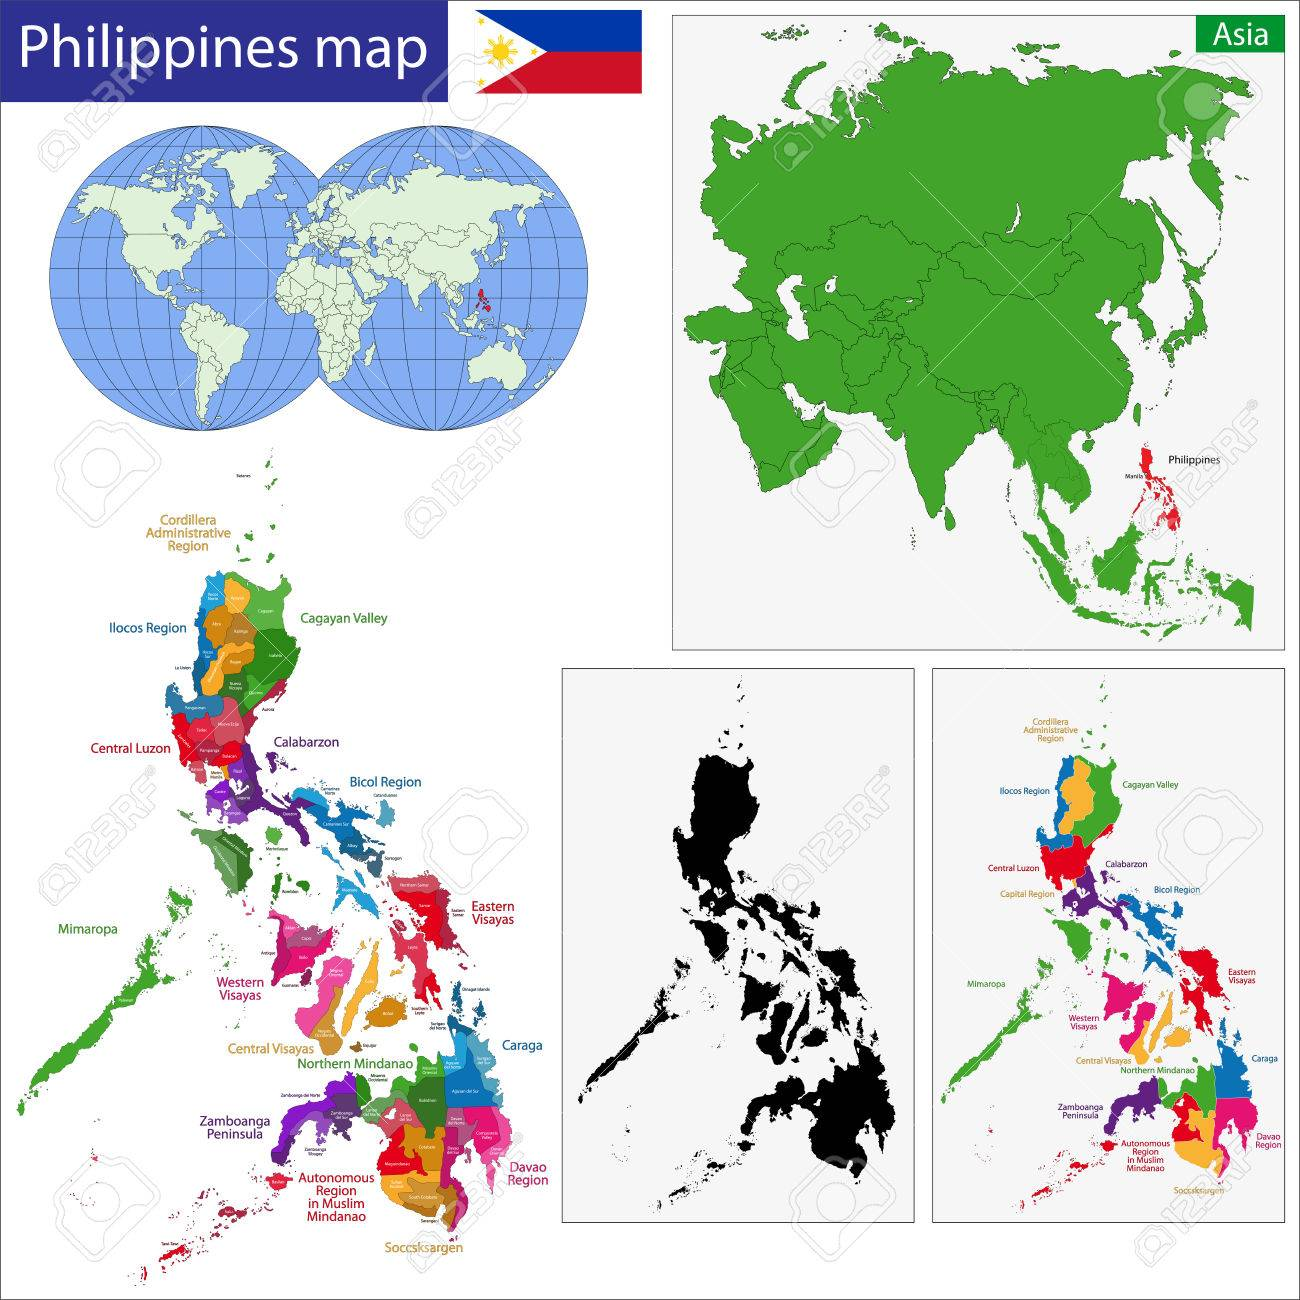 Map Of Republic Of The Philippines With The Provinces Colored